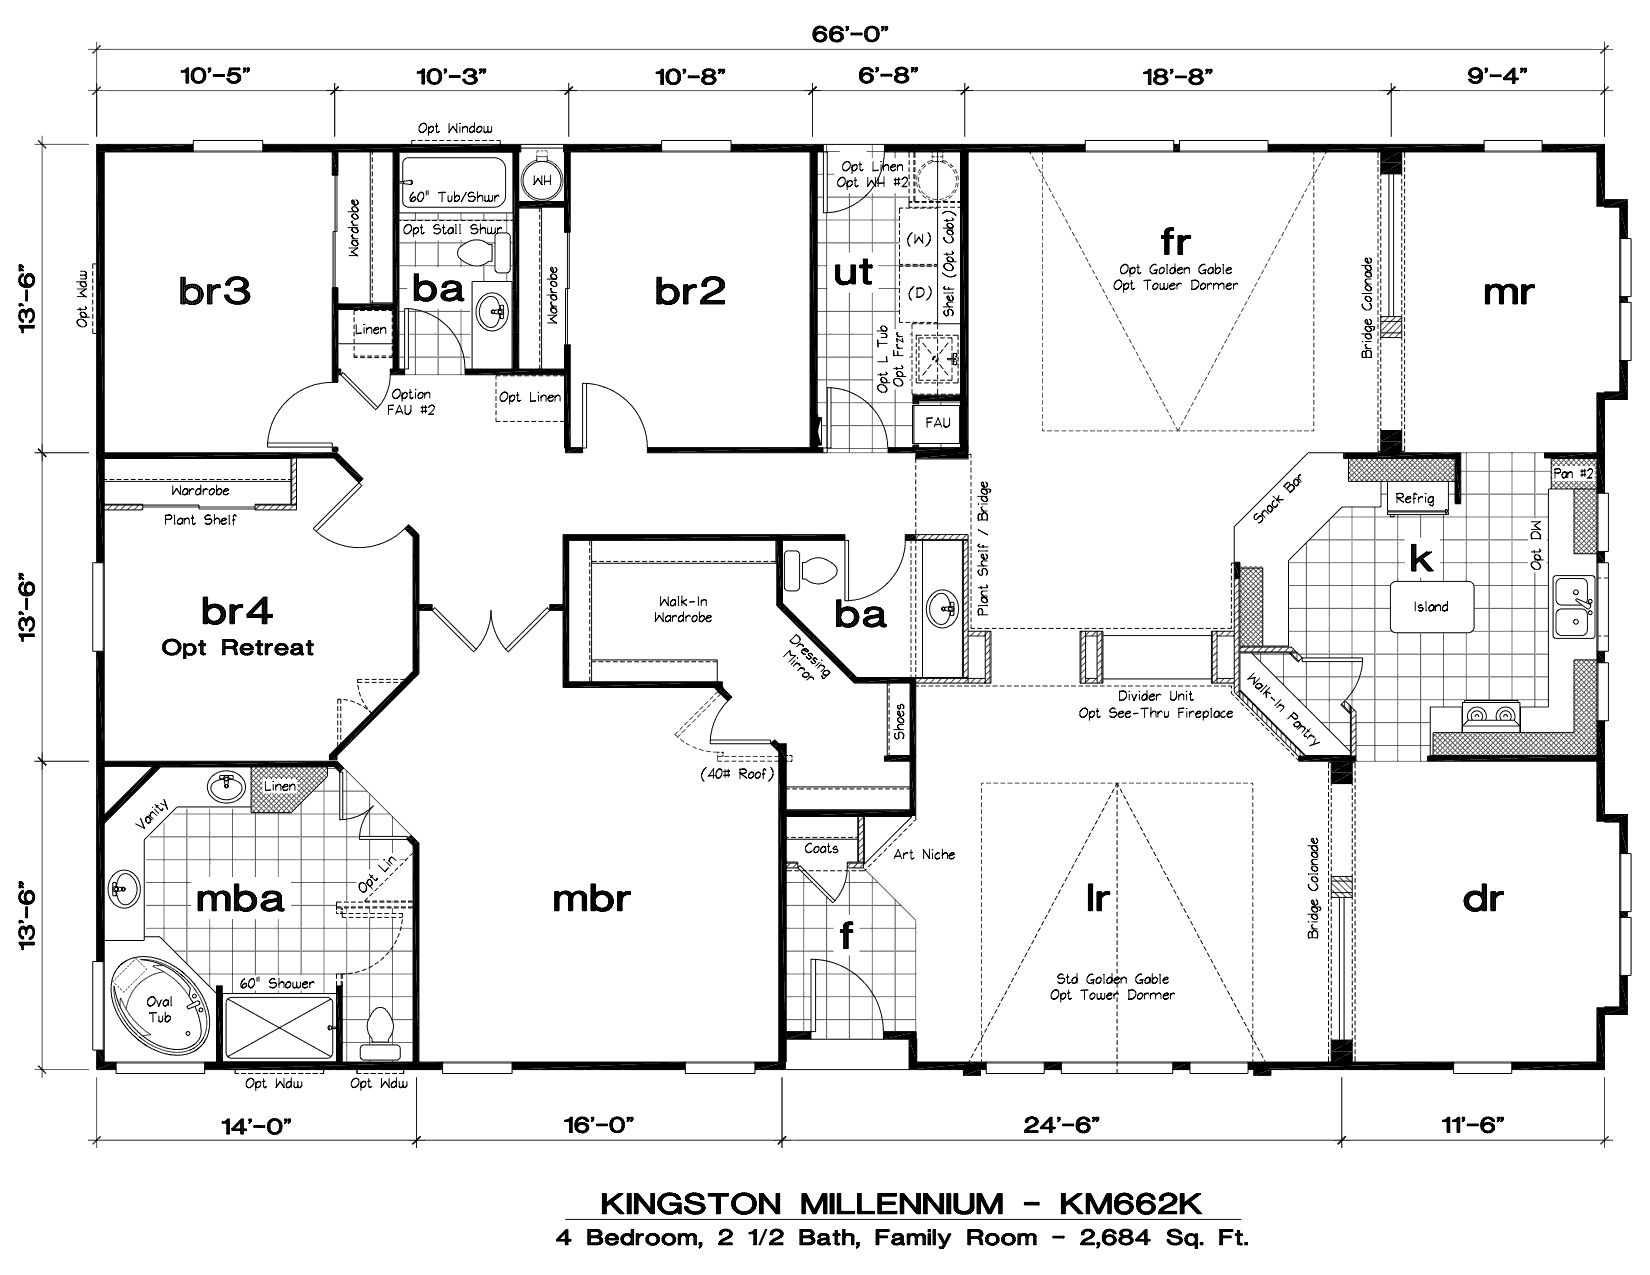 5 Bedroom Double Wide Mobile Home Floor Plans Modular Home Plans Mobile Home Floor Plans Modular Home Floor Plans